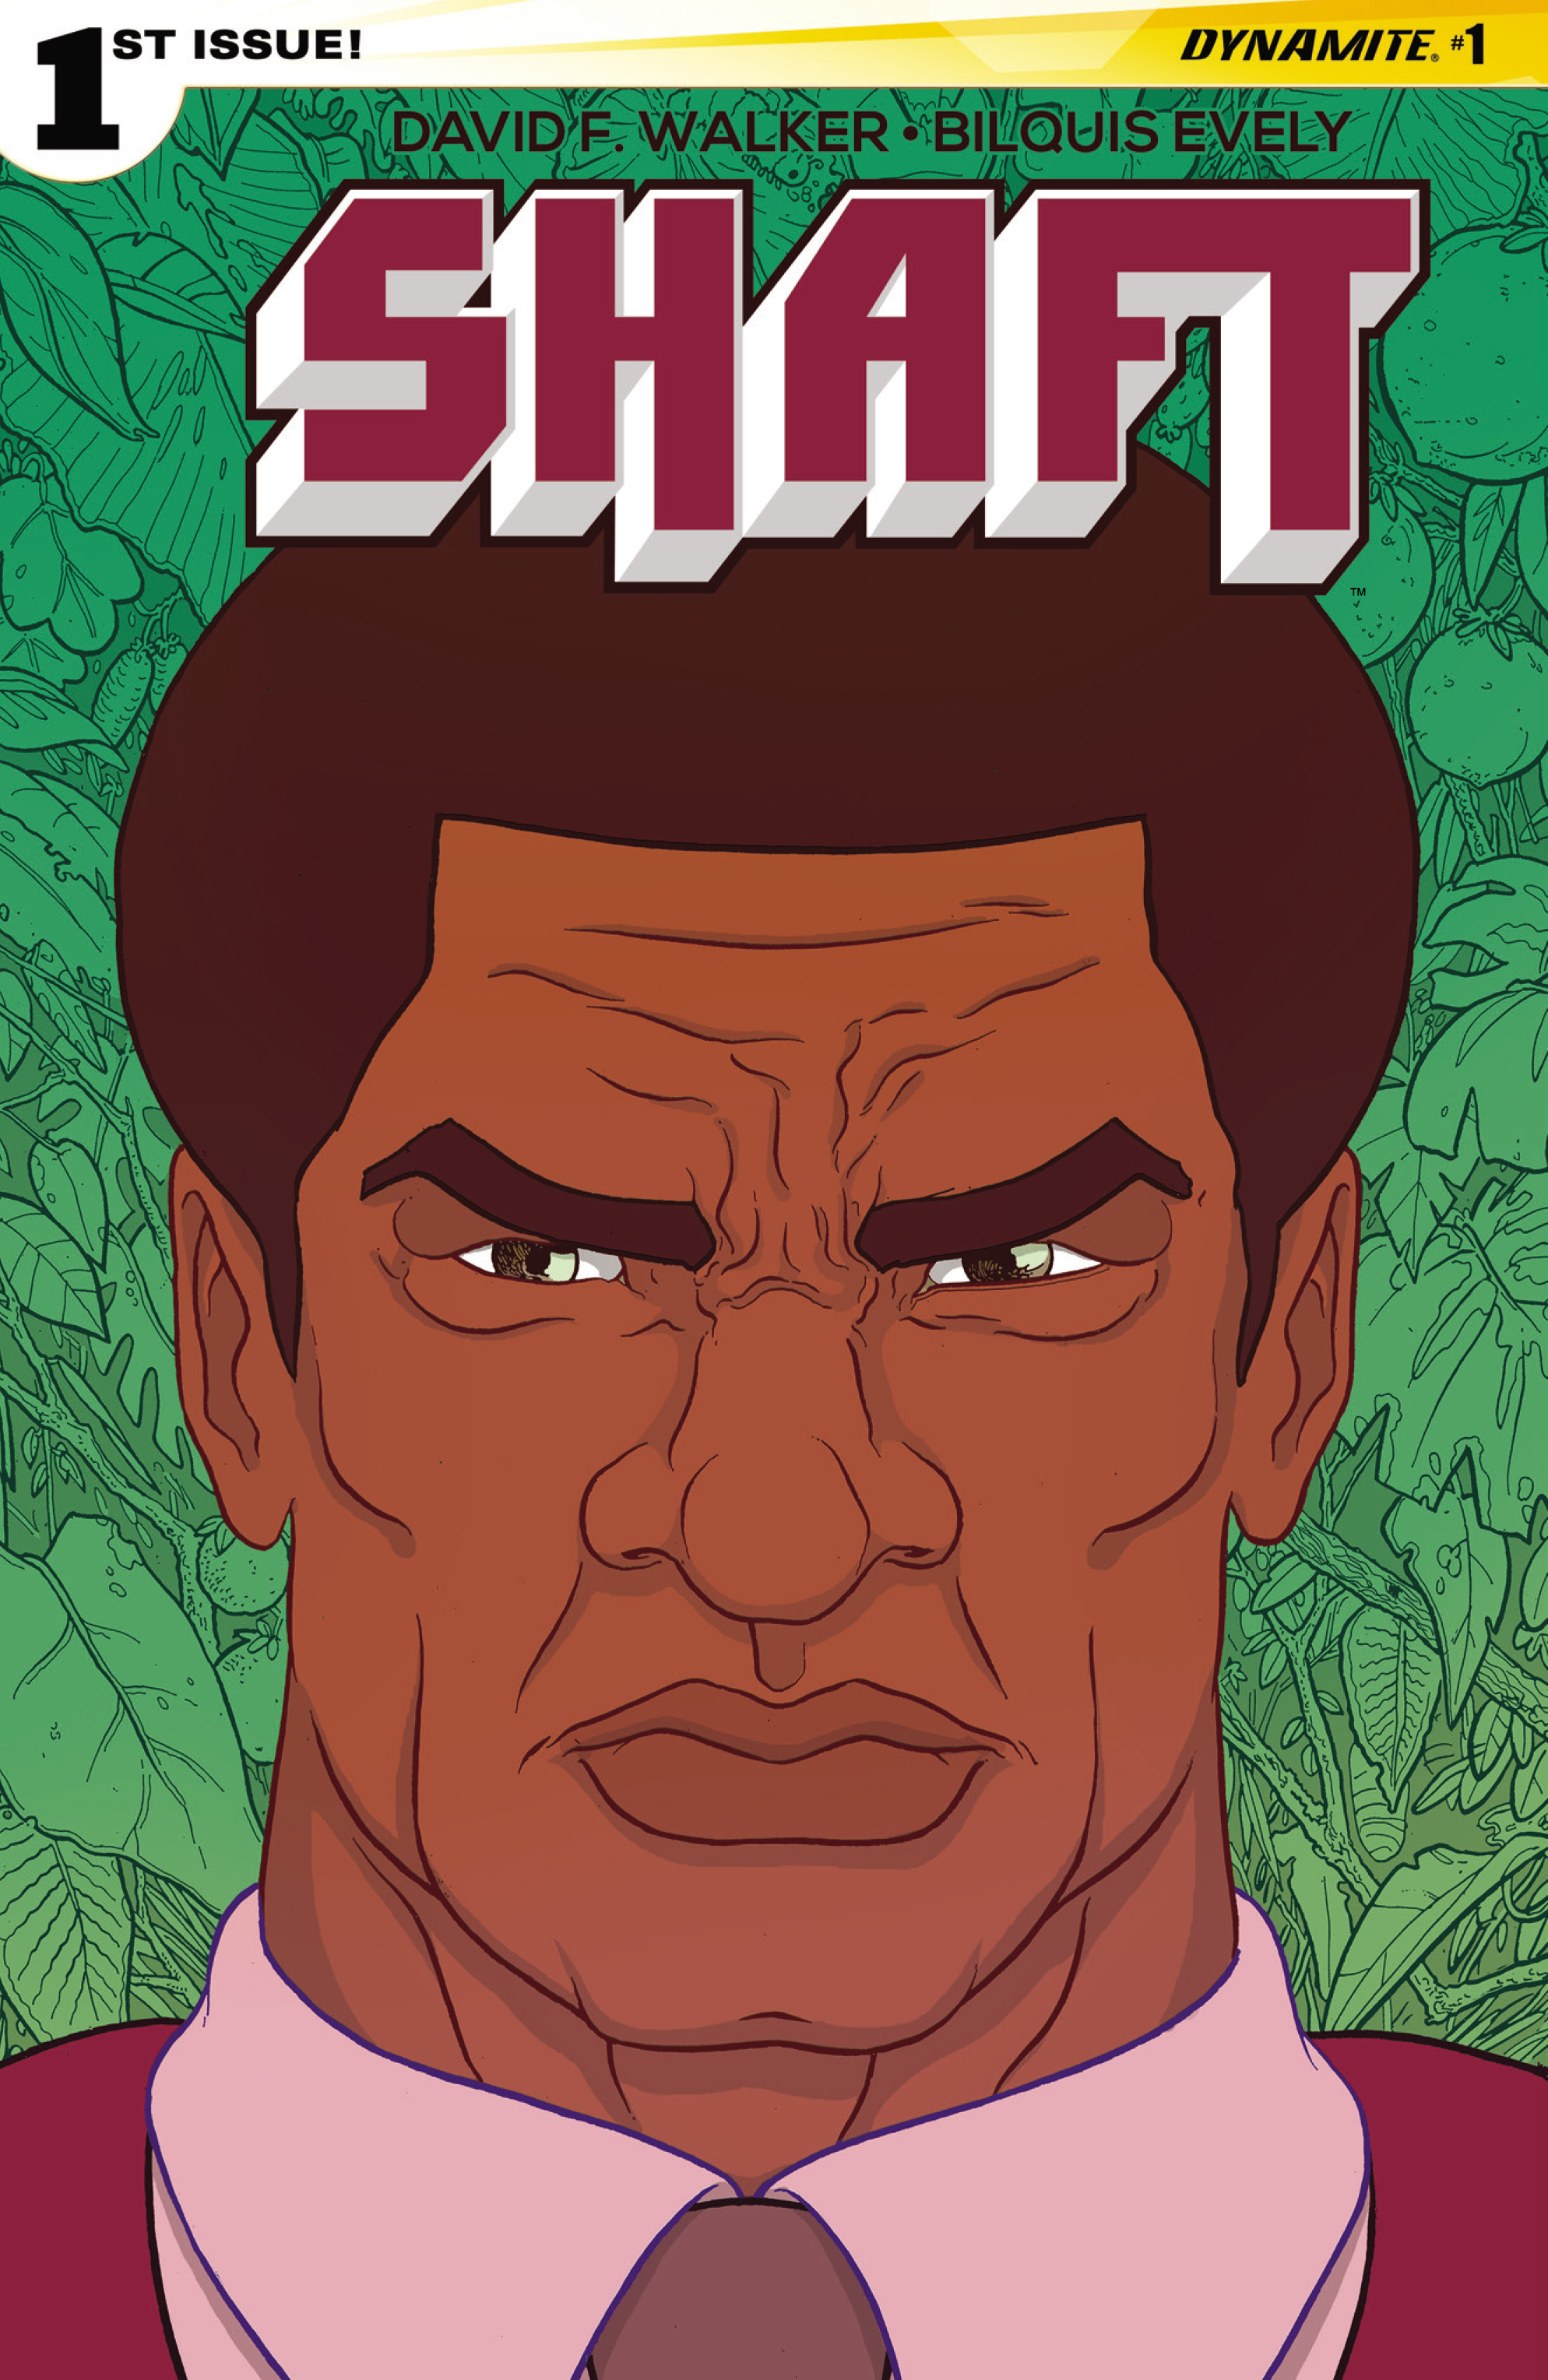 Read online Shaft comic -  Issue #1 - 4